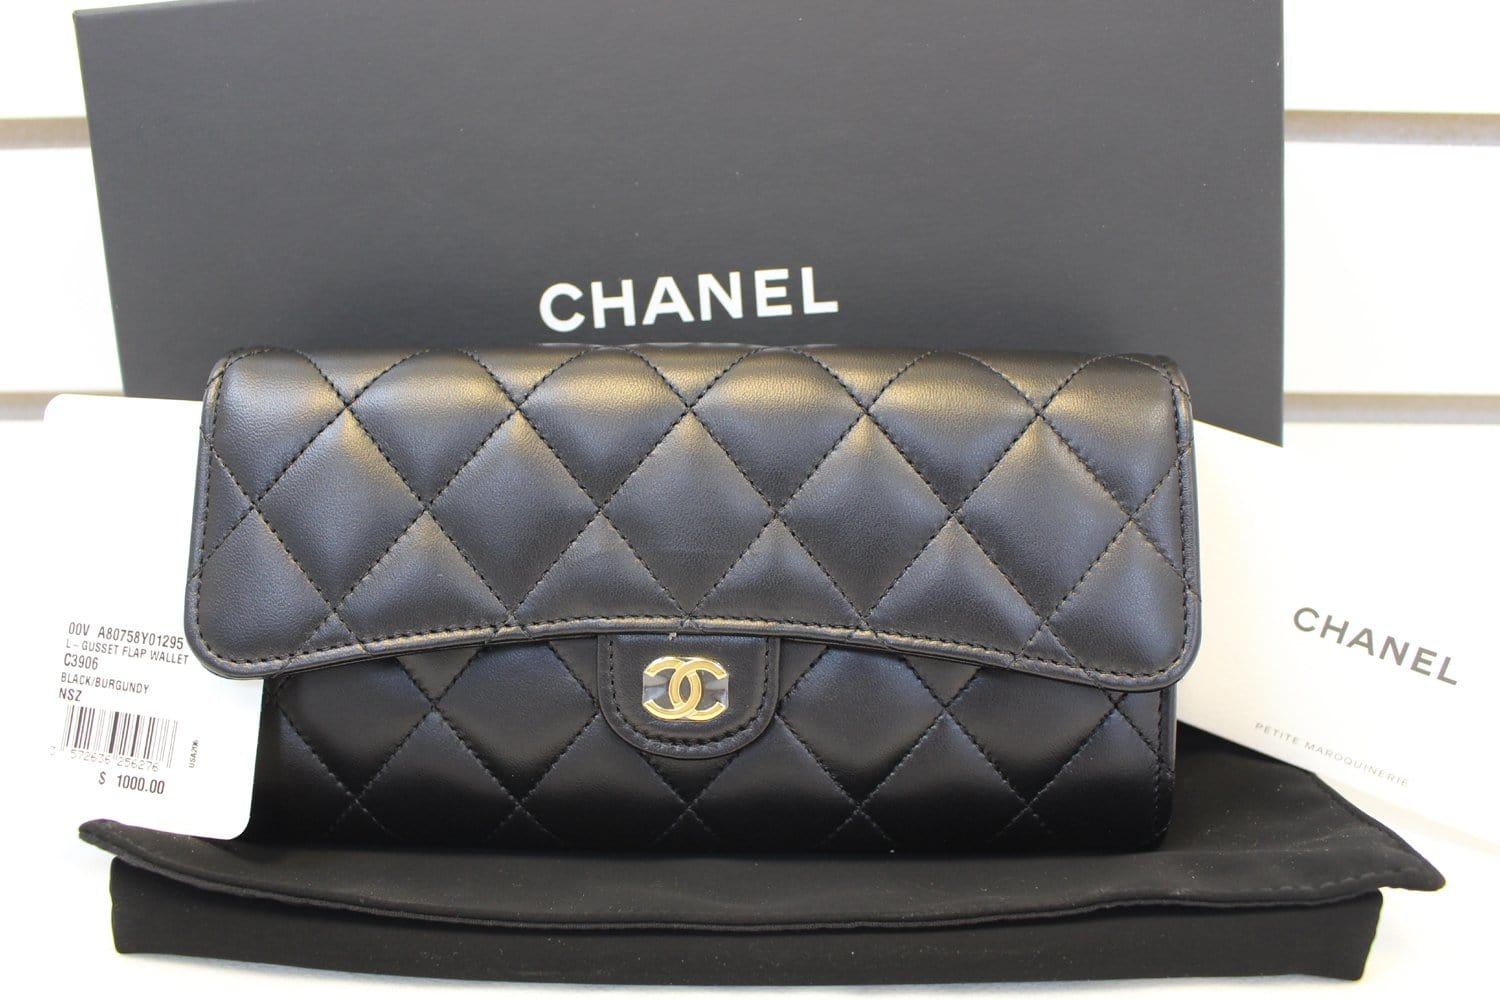 ffc7f862b078fb CHANEL Wallet Leather Black Quilted Lambskin Long Flap